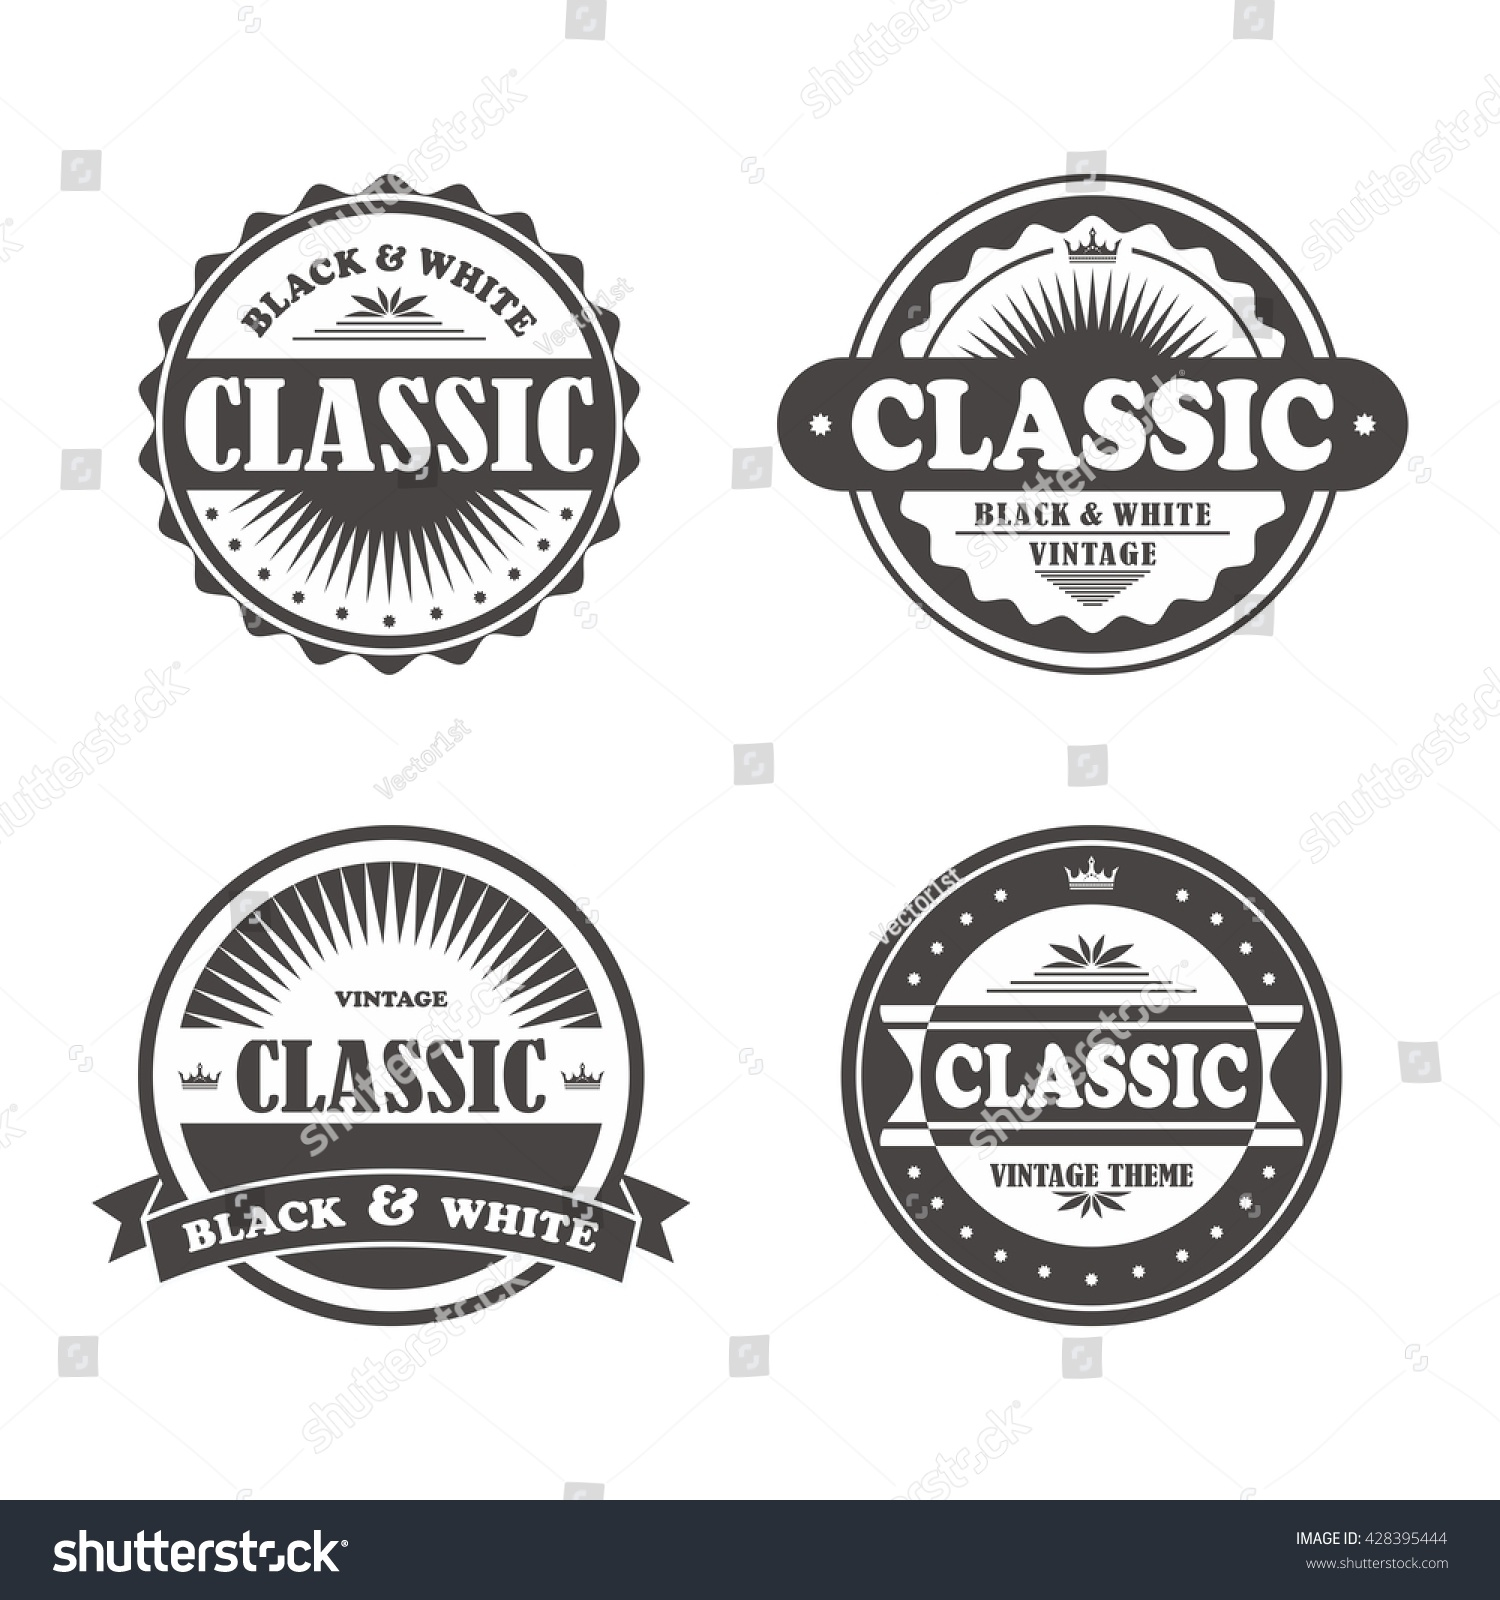 Vintage Label Template Stock Vector Royalty Free 428395444